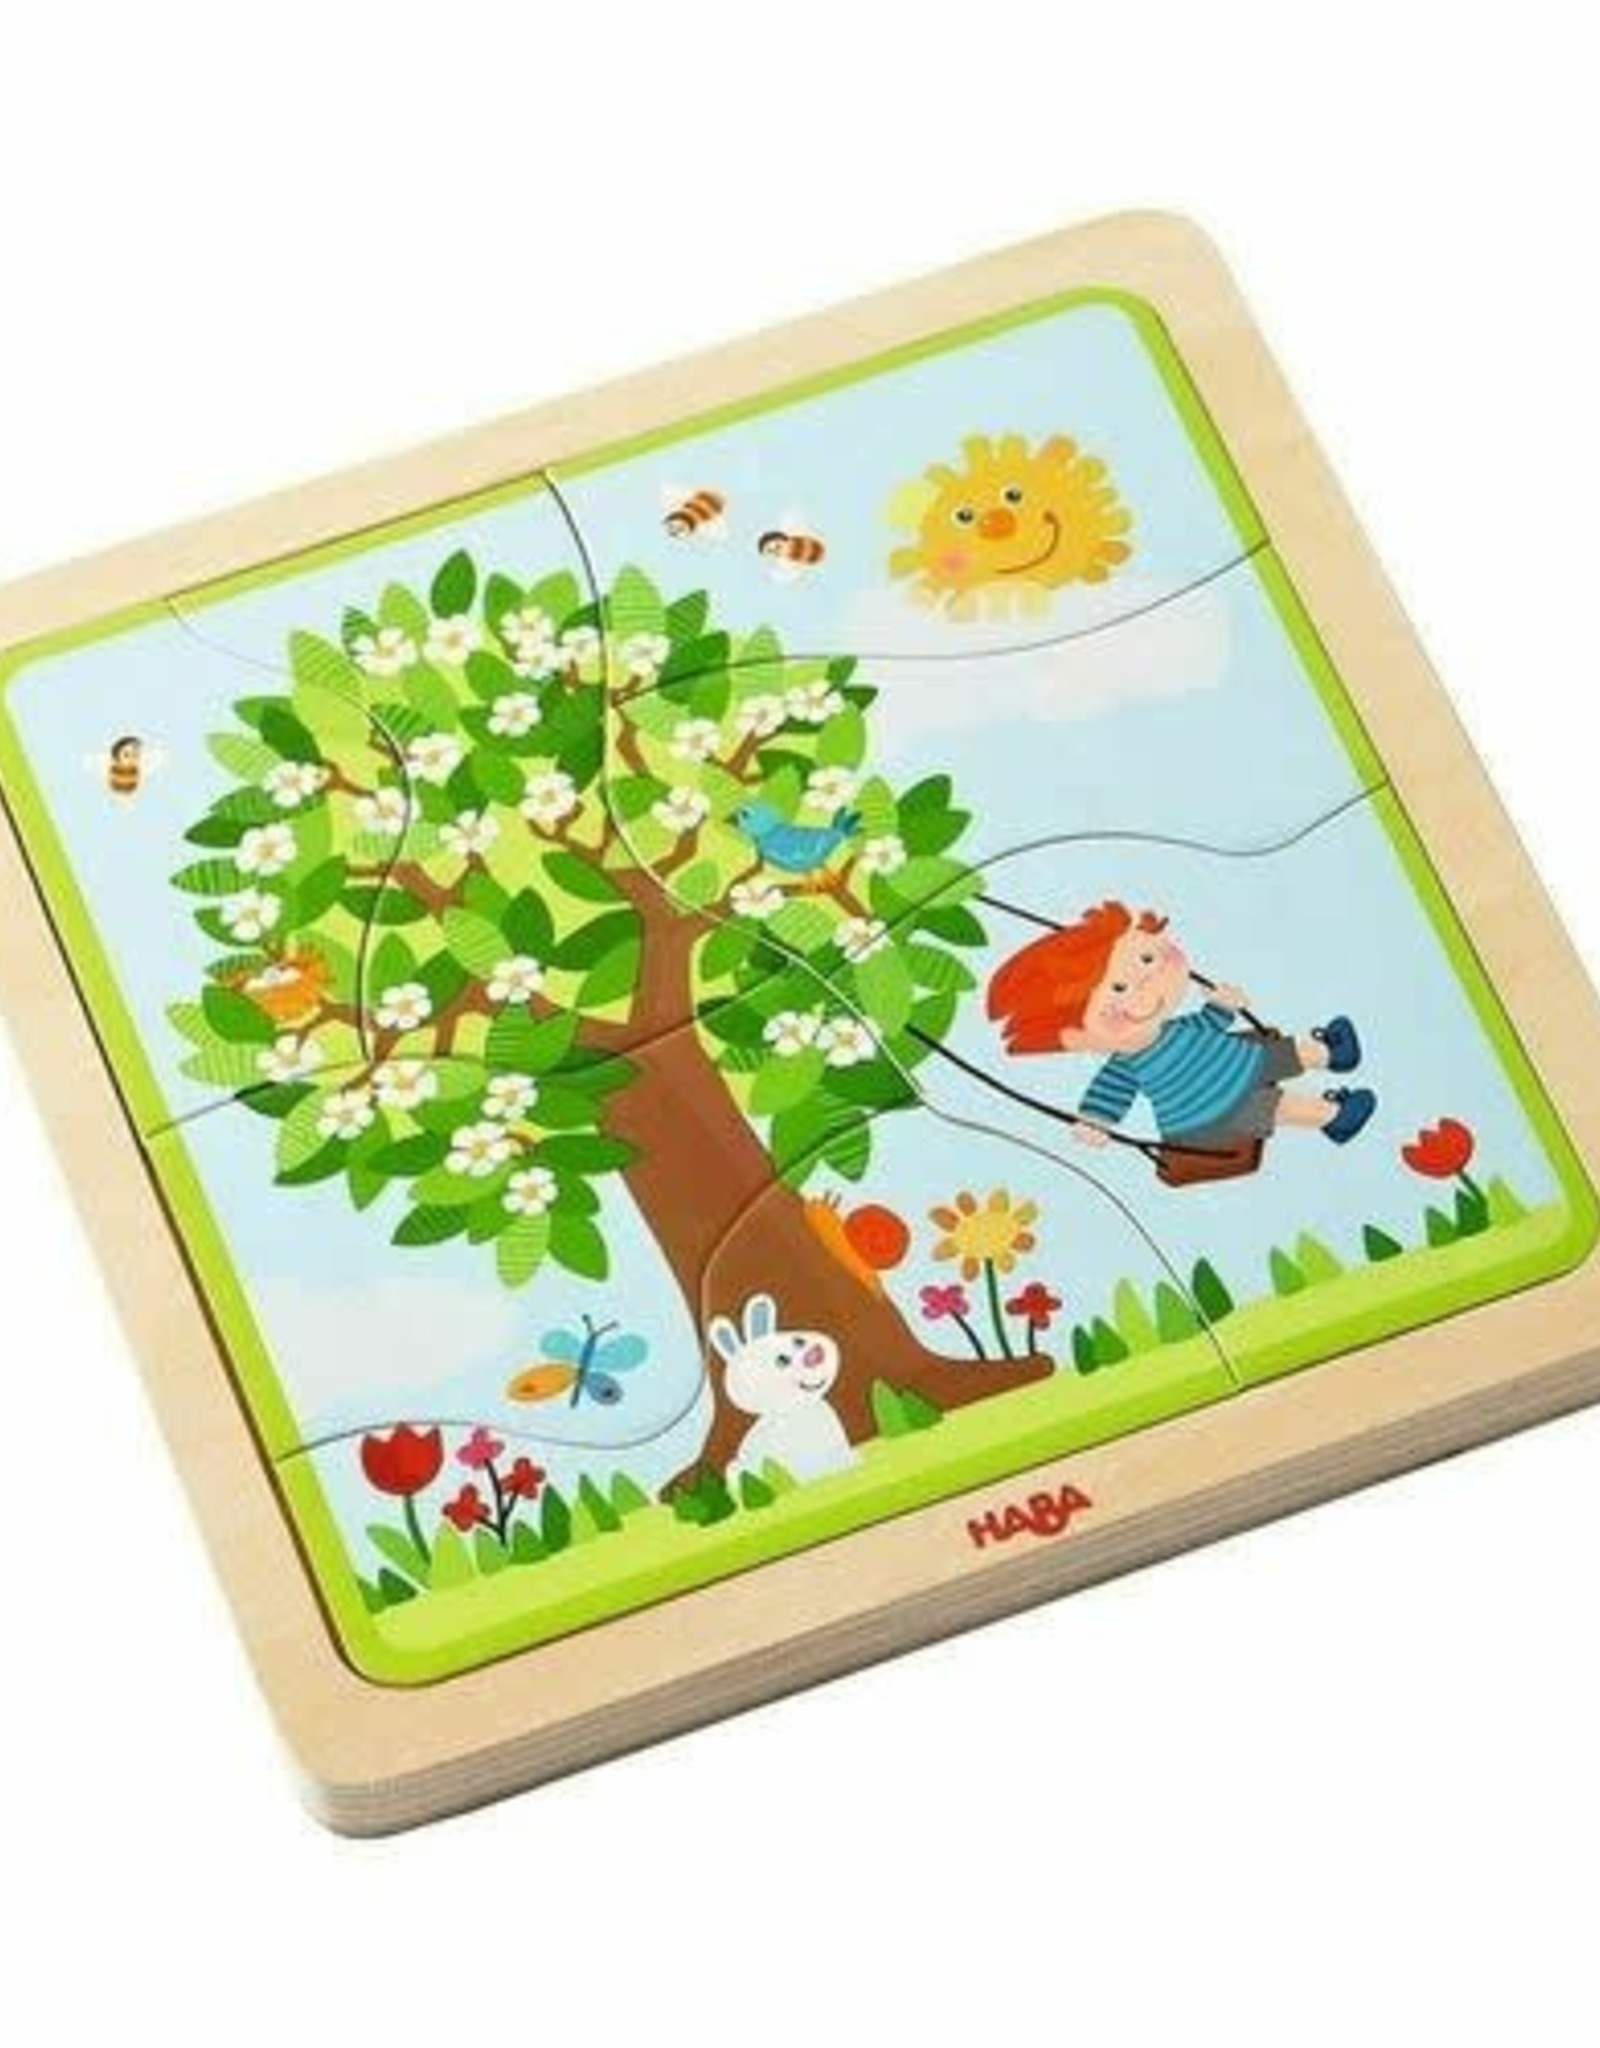 Haba 22pc My Time of Year Wooden Puzzle